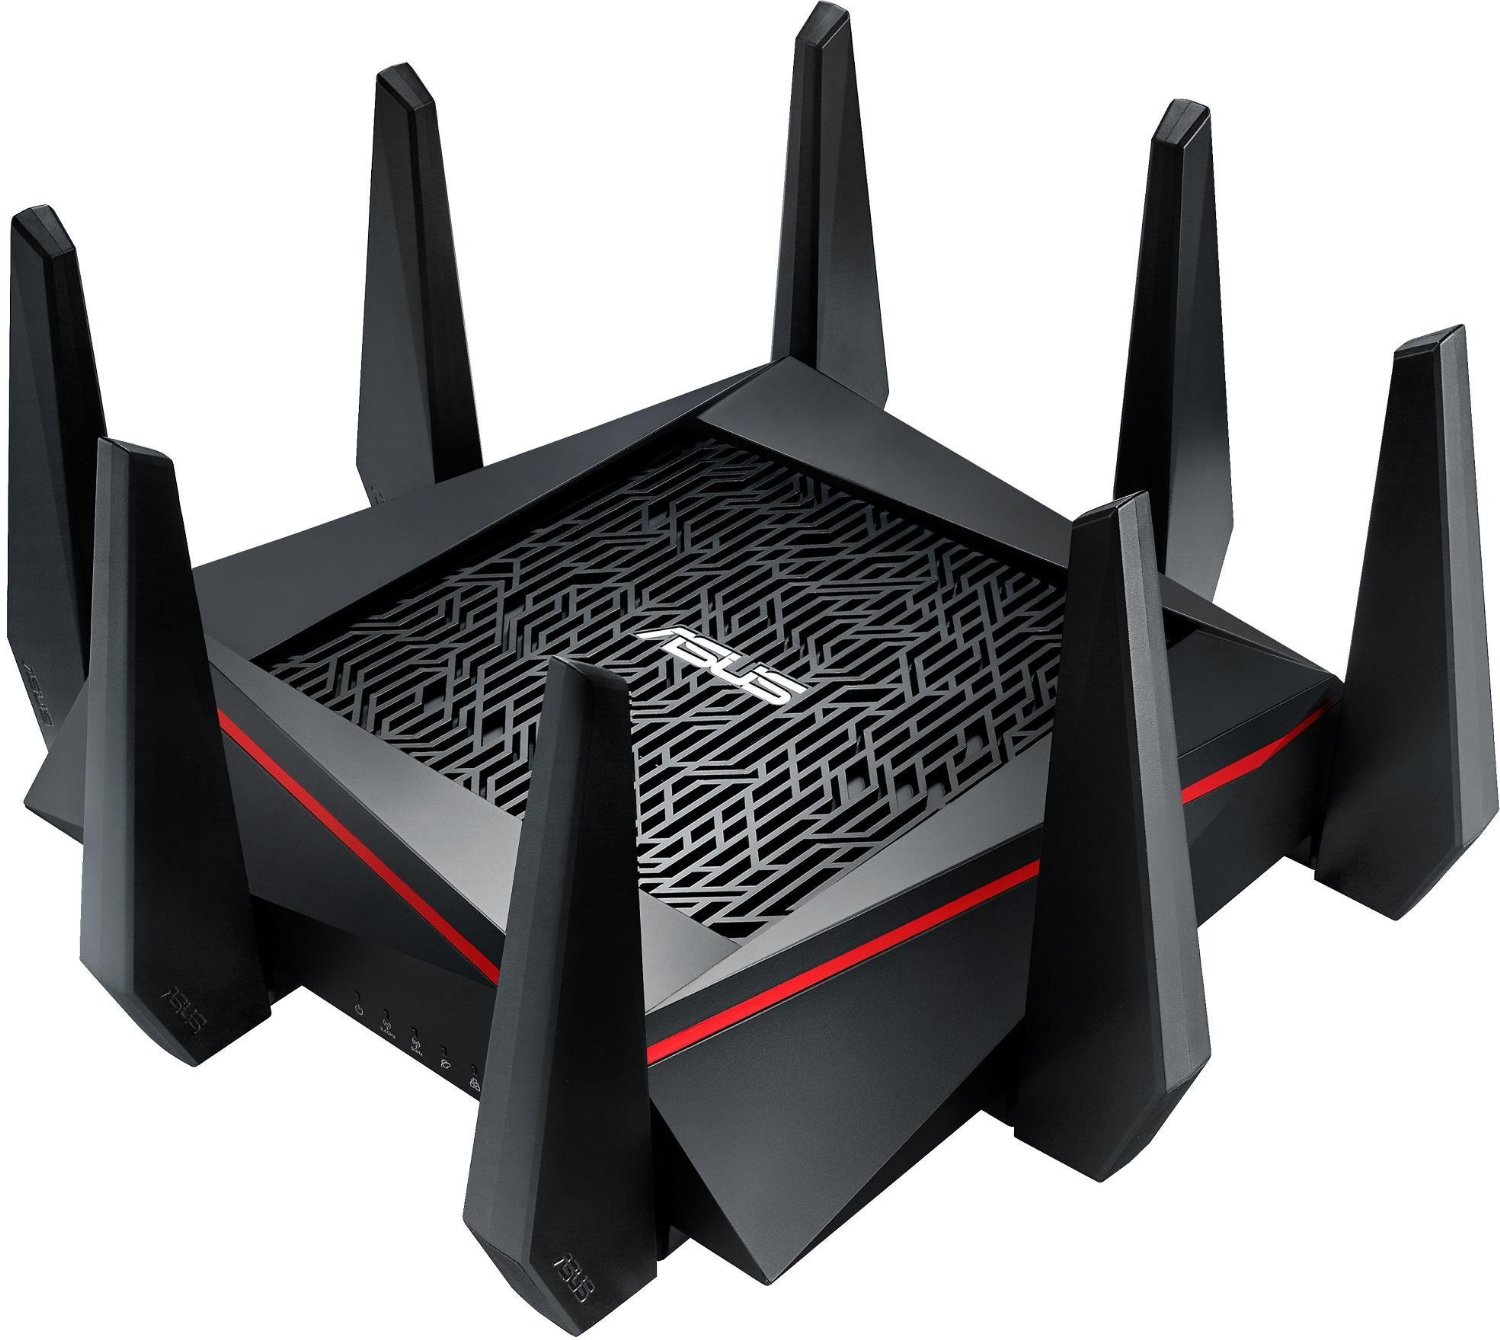 Routers wifi dual band 2.4 y 5Ghz para PS4 2016 Slim, como jugar online sin lag ni retrasos en PlayStation 4 2016